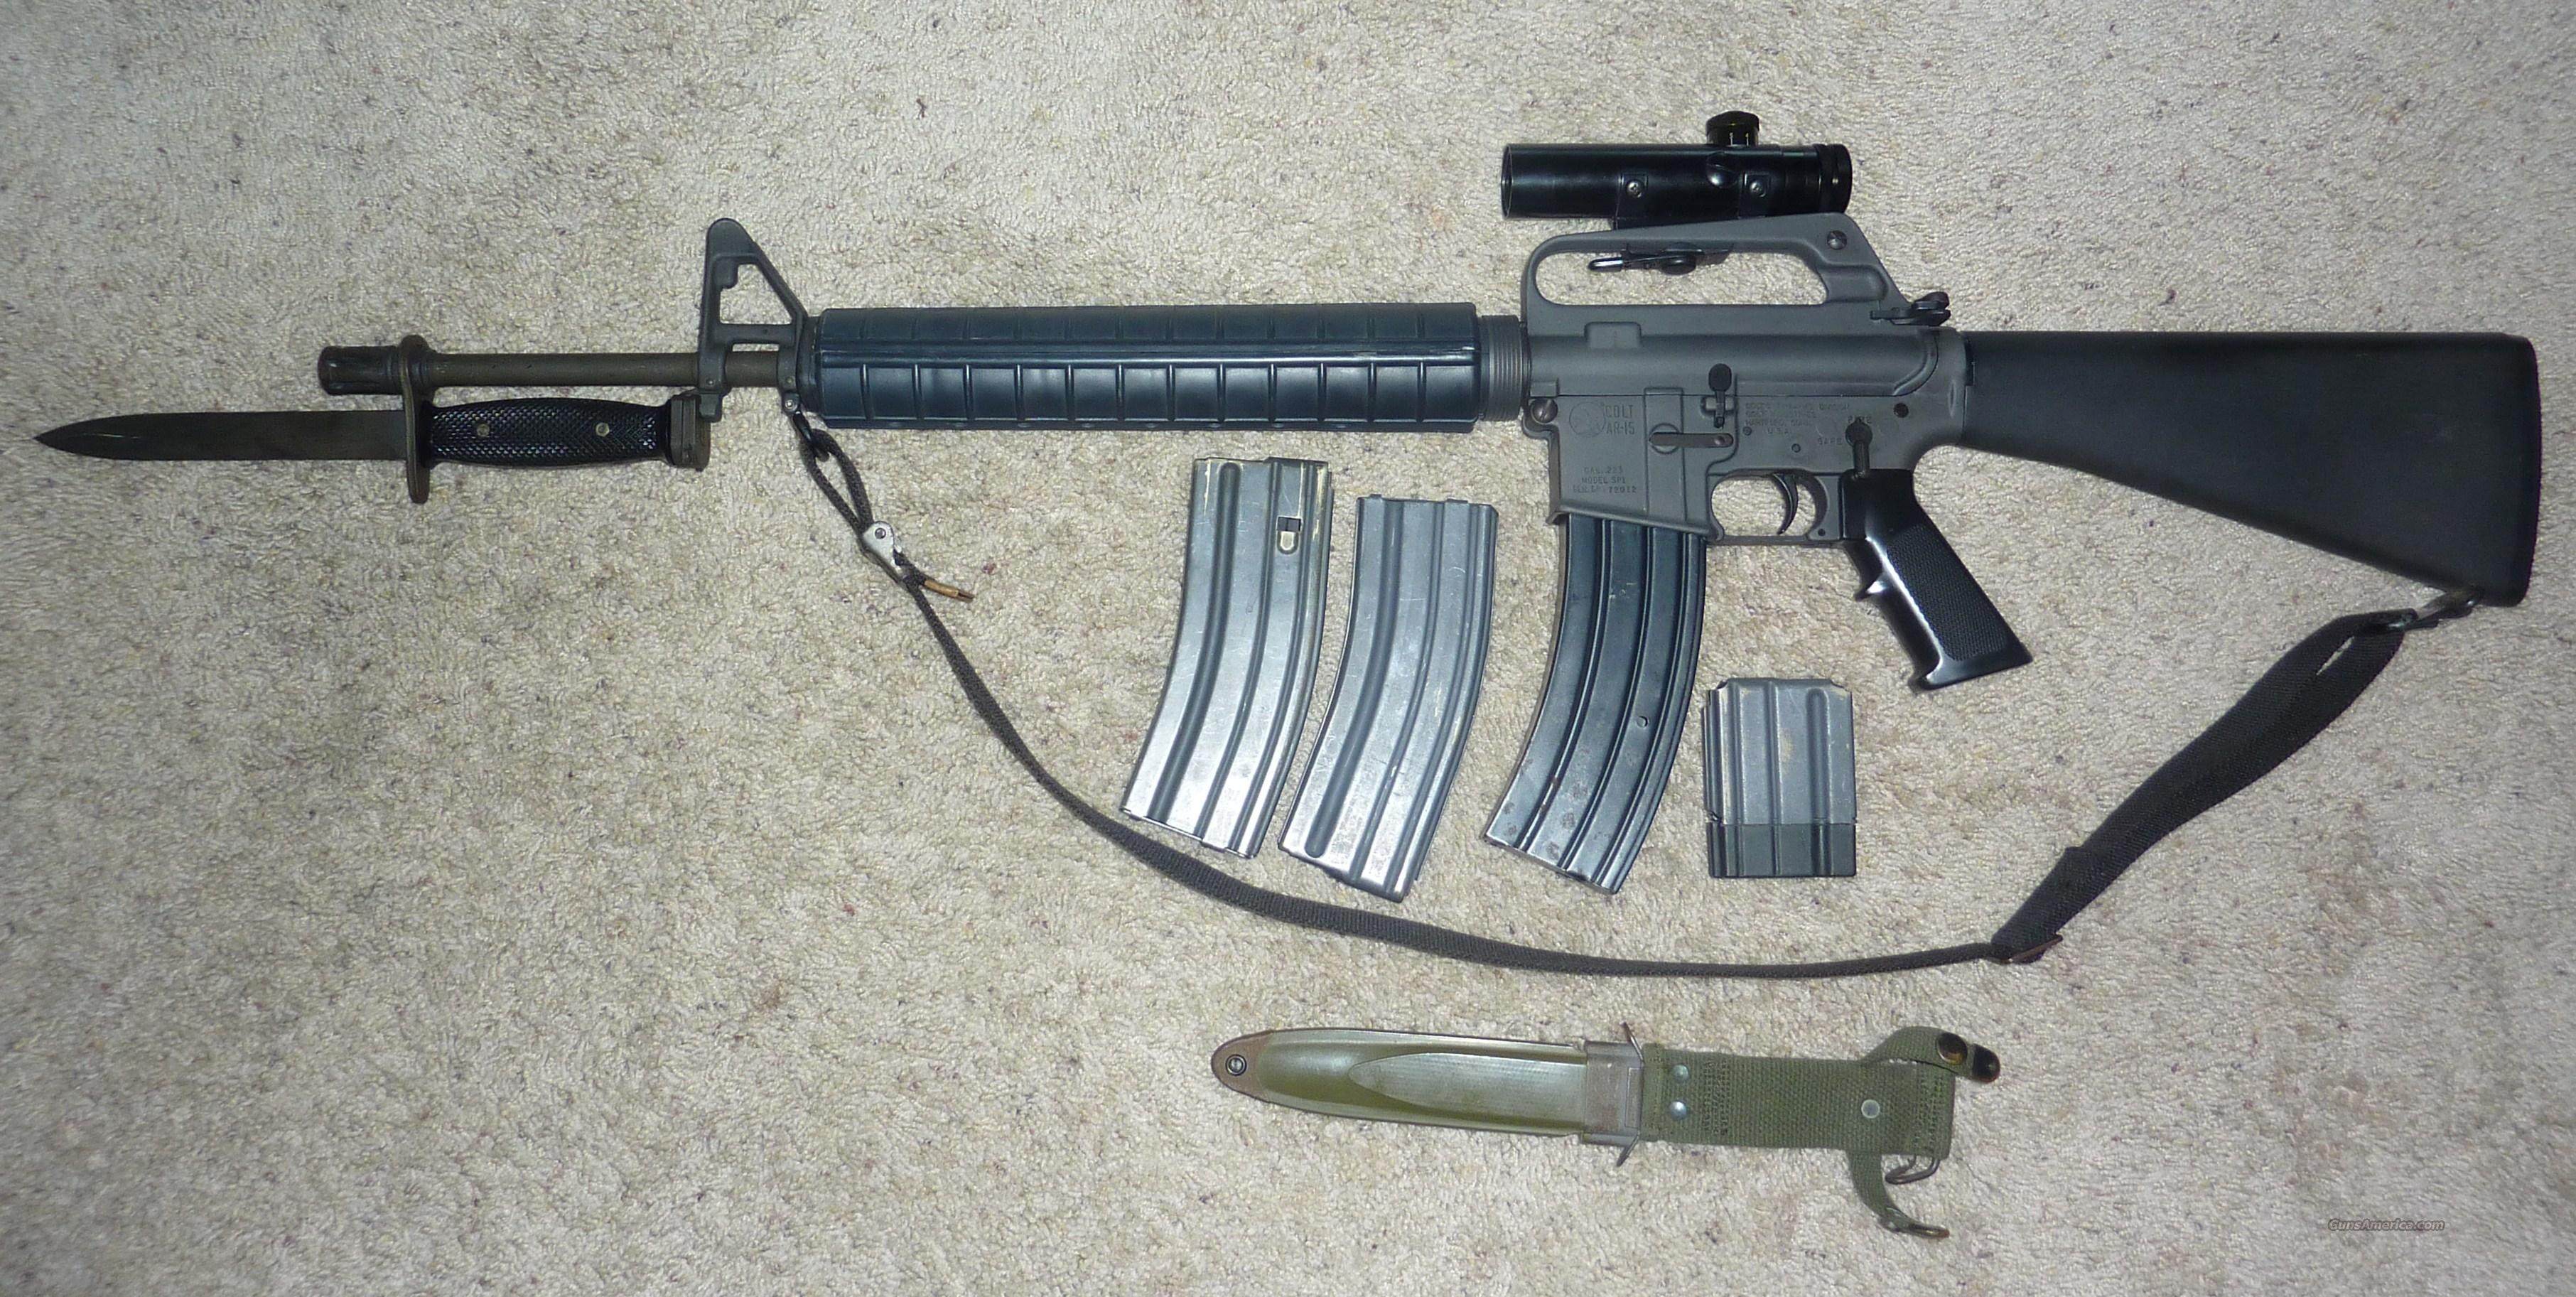 Colt SP-1 AR15 with bayonet, scope  and extra mags  Guns > Rifles > Colt Military/Tactical Rifles